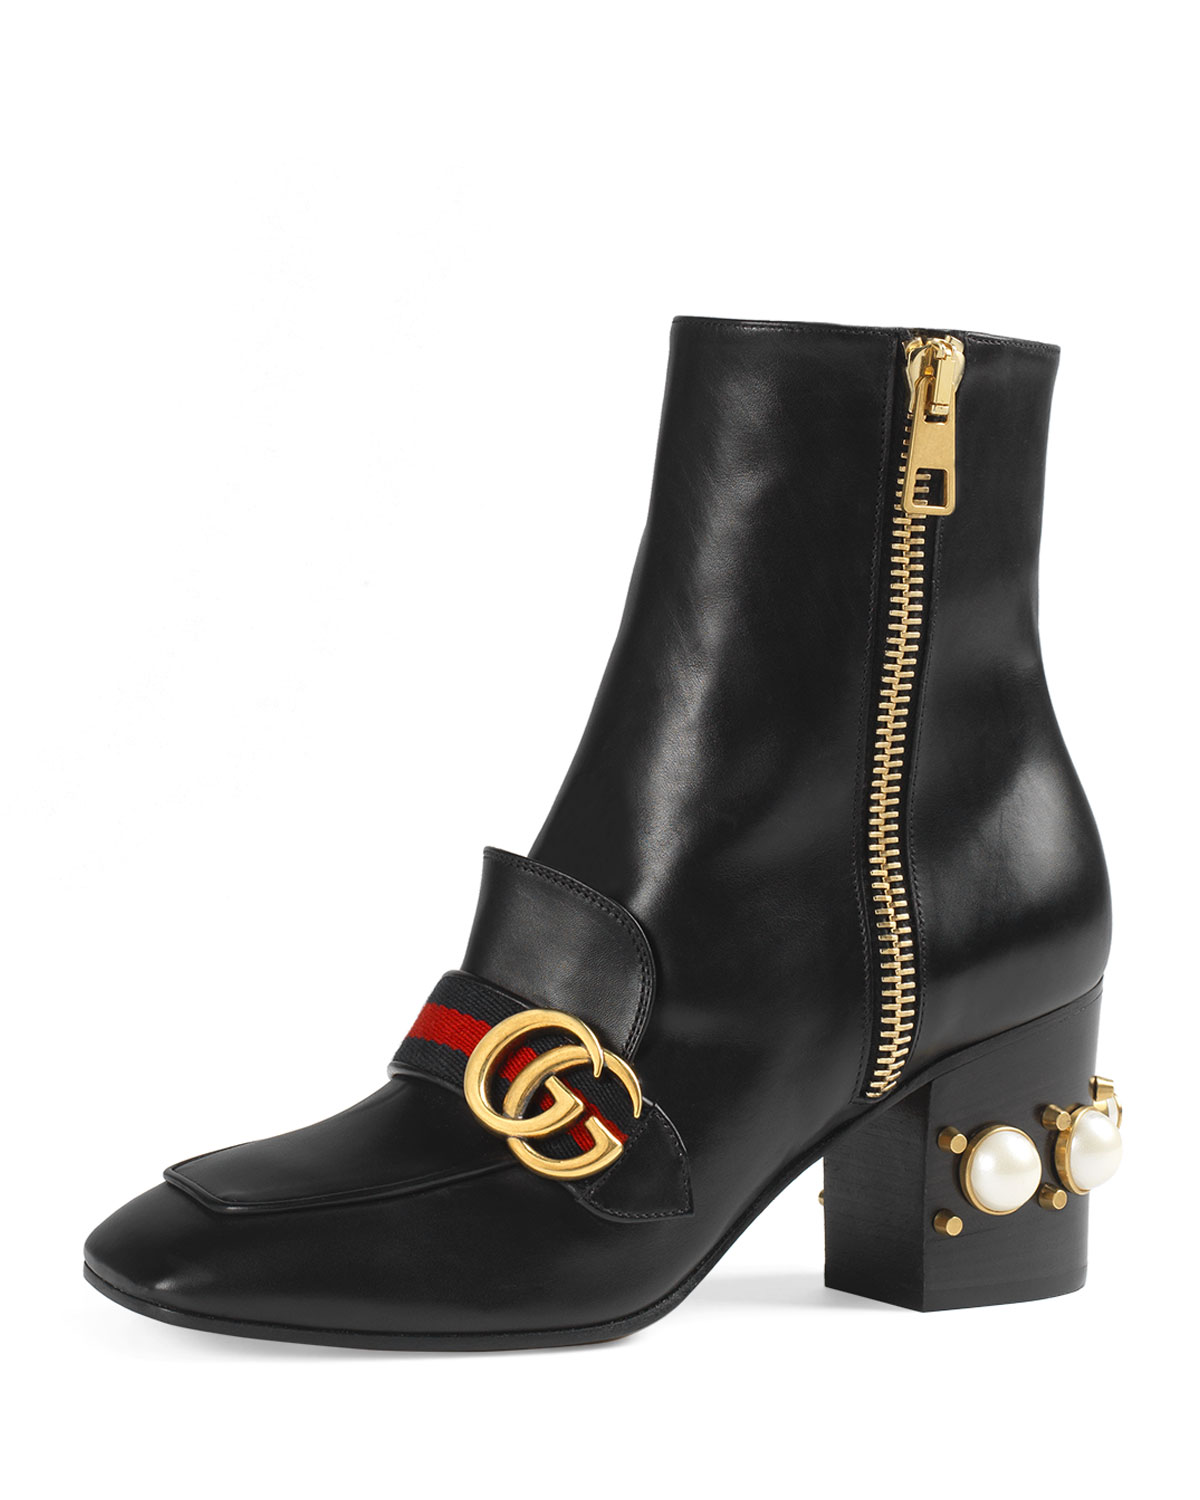 1b3e9ed3bd1 Gucci Peyton Pearly-Heel Ankle Boot